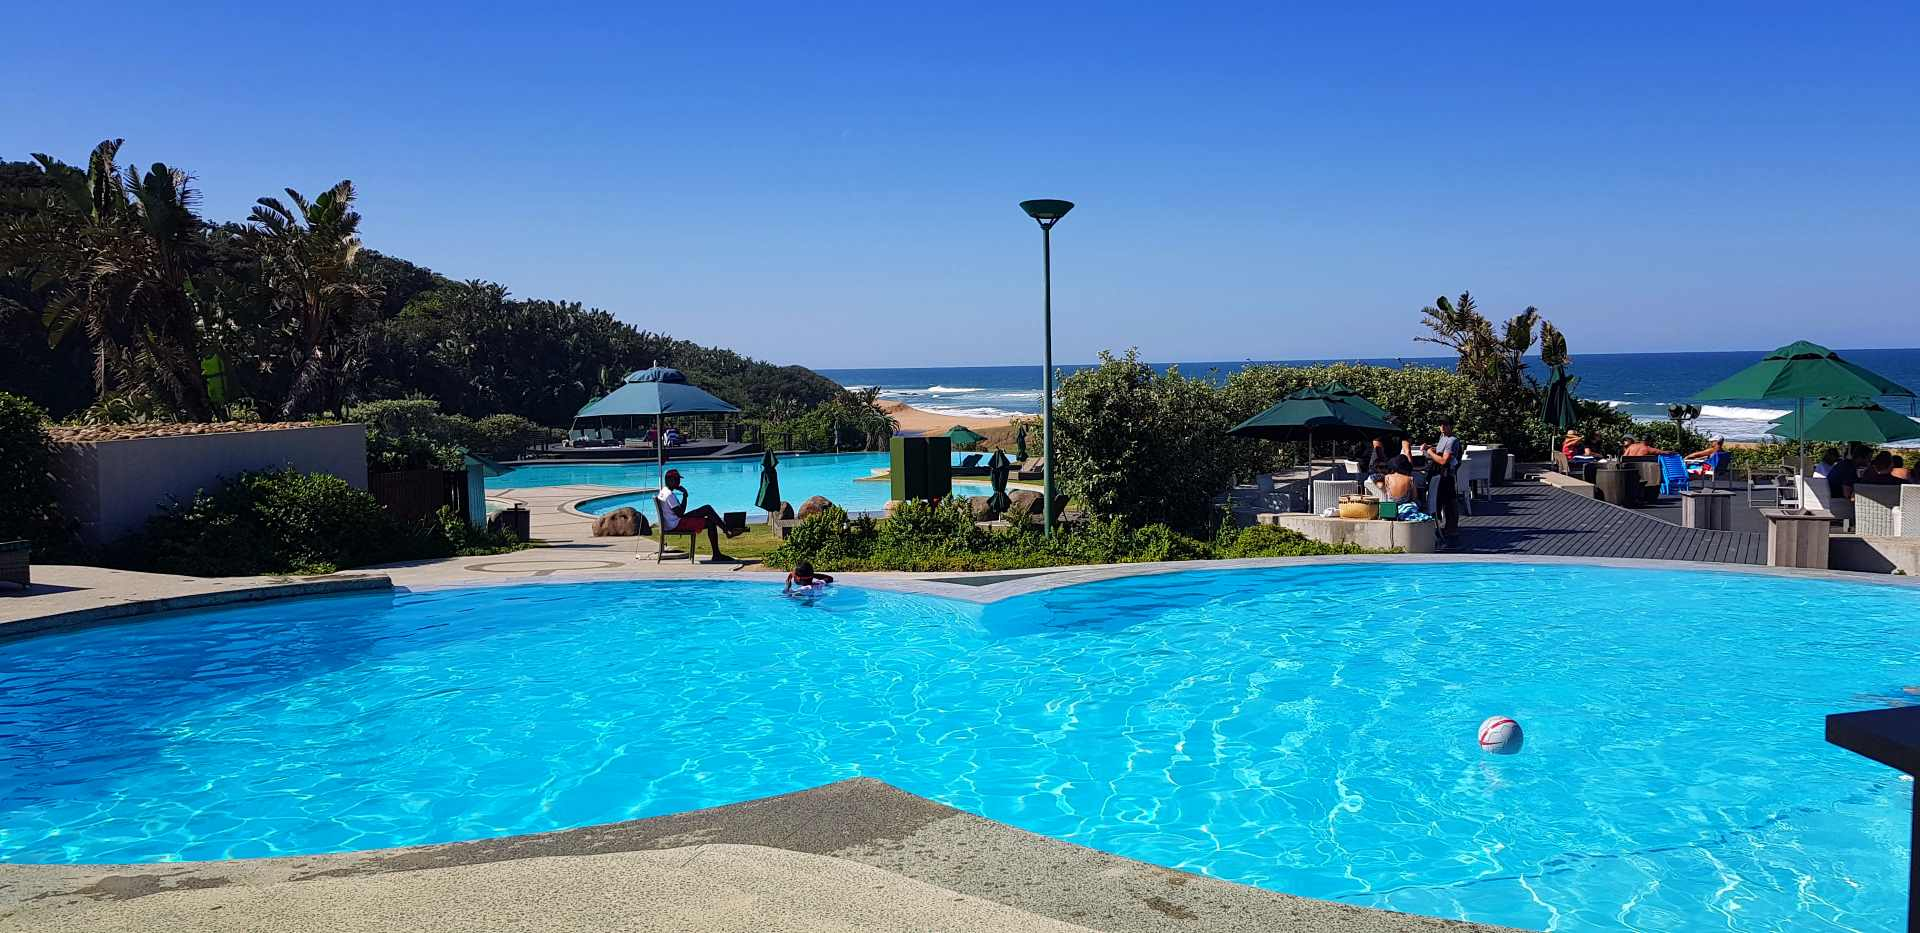 zimbali beach - Valley of the pools